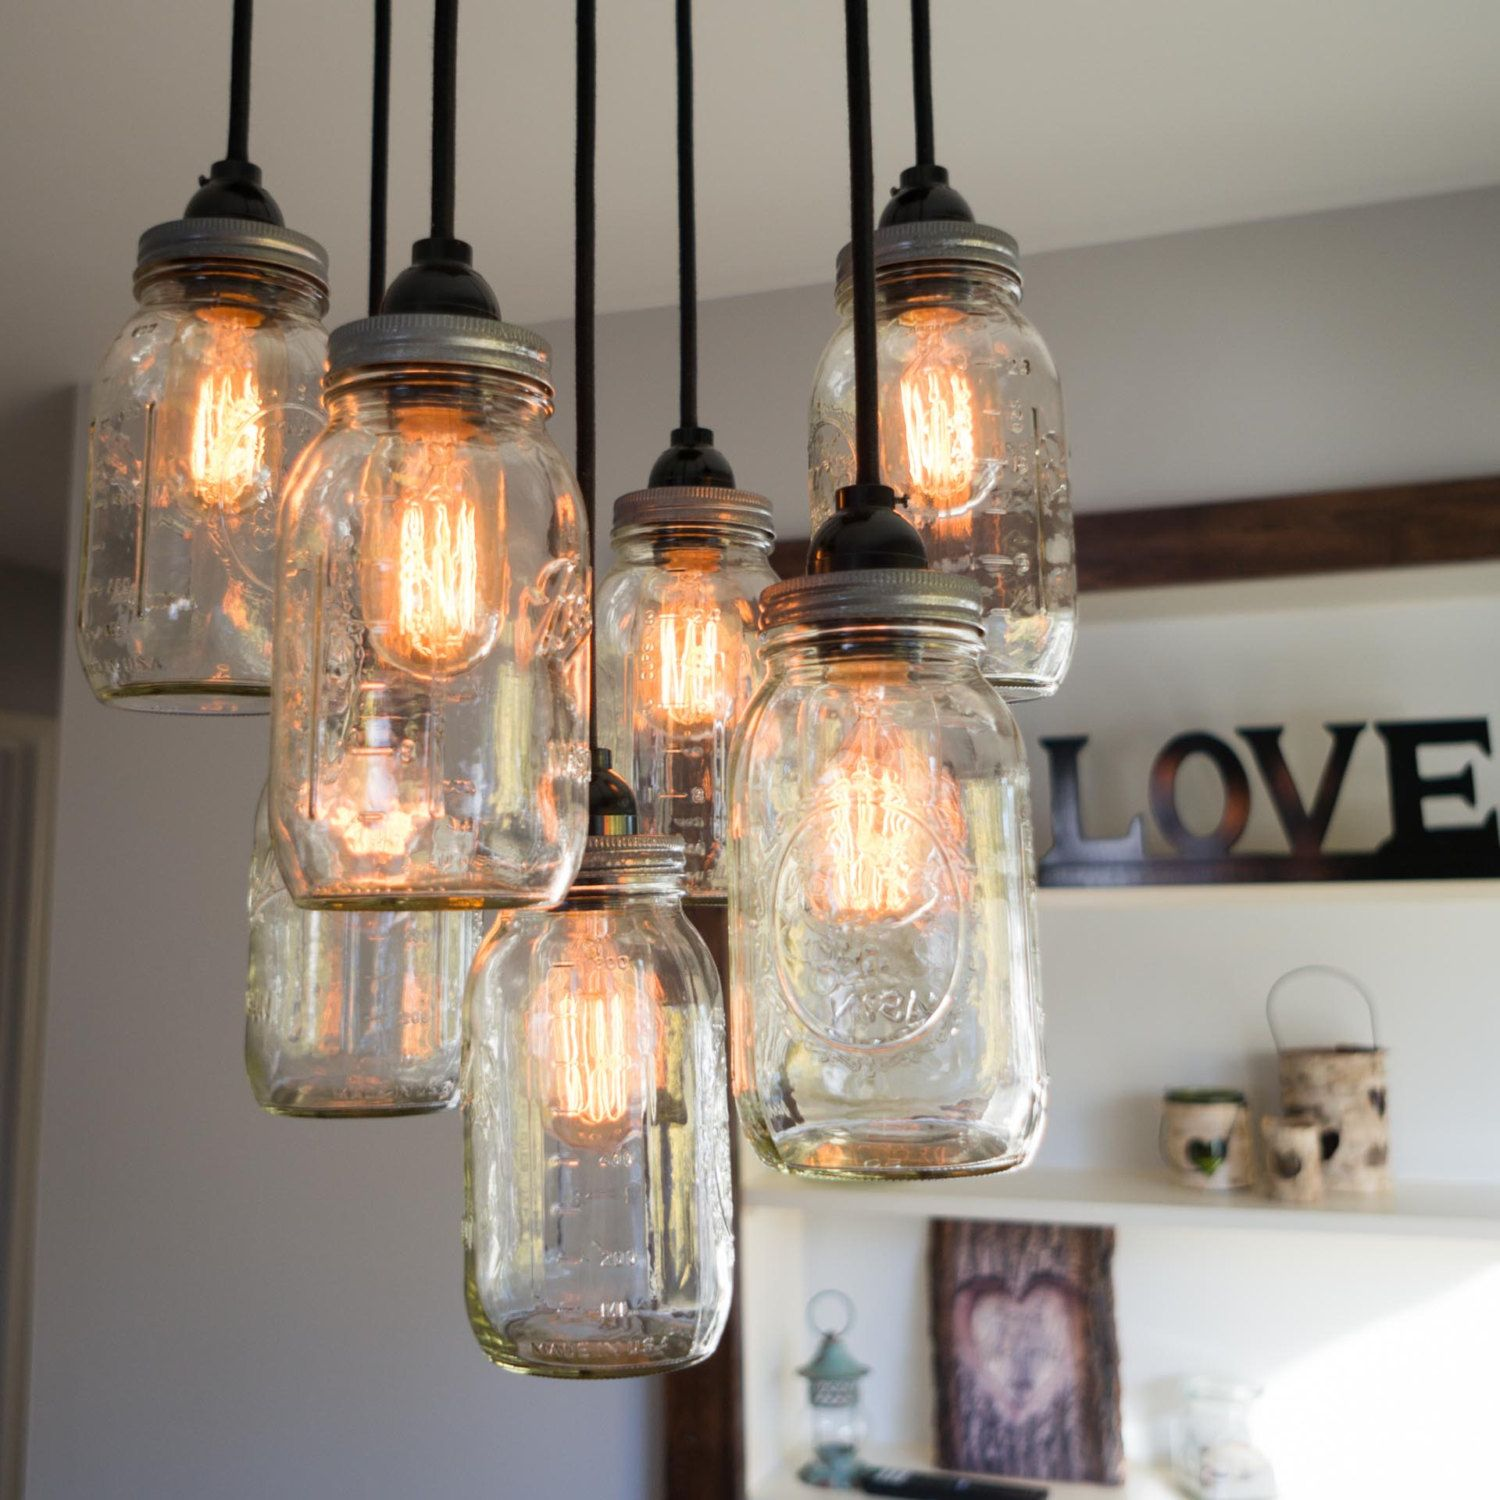 Mason Jar Chandelier Rustic Lighting Farmhouse Decor